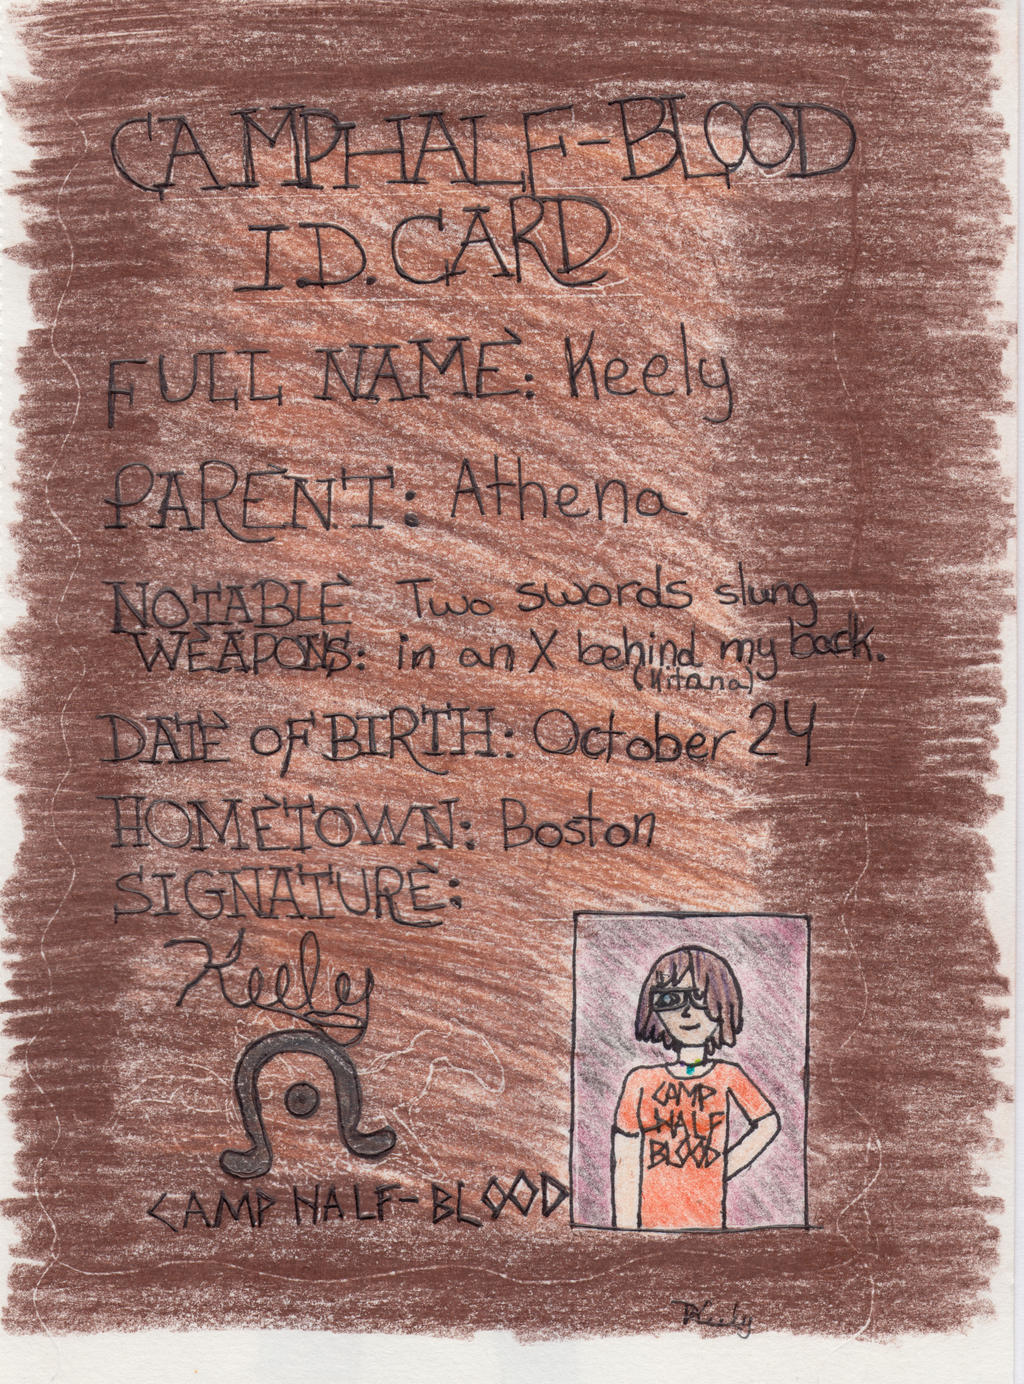 Camp Half-Blood ID Card by Keely-Z